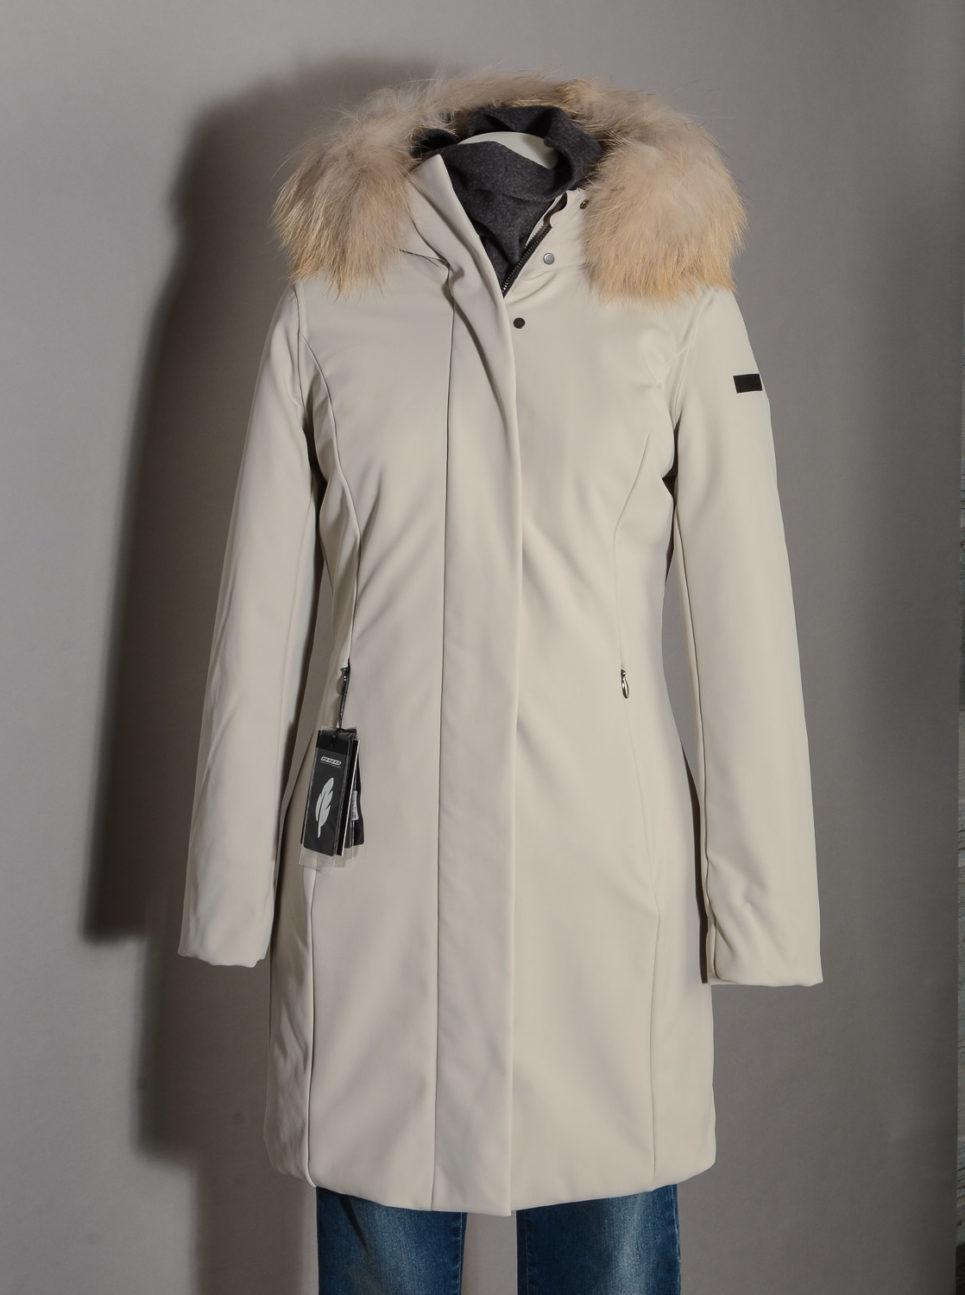 Winter Long Lady Fur T W19501FT Parka Donna RRD con Pelliccia colore 83 Ecru Sabbia -14